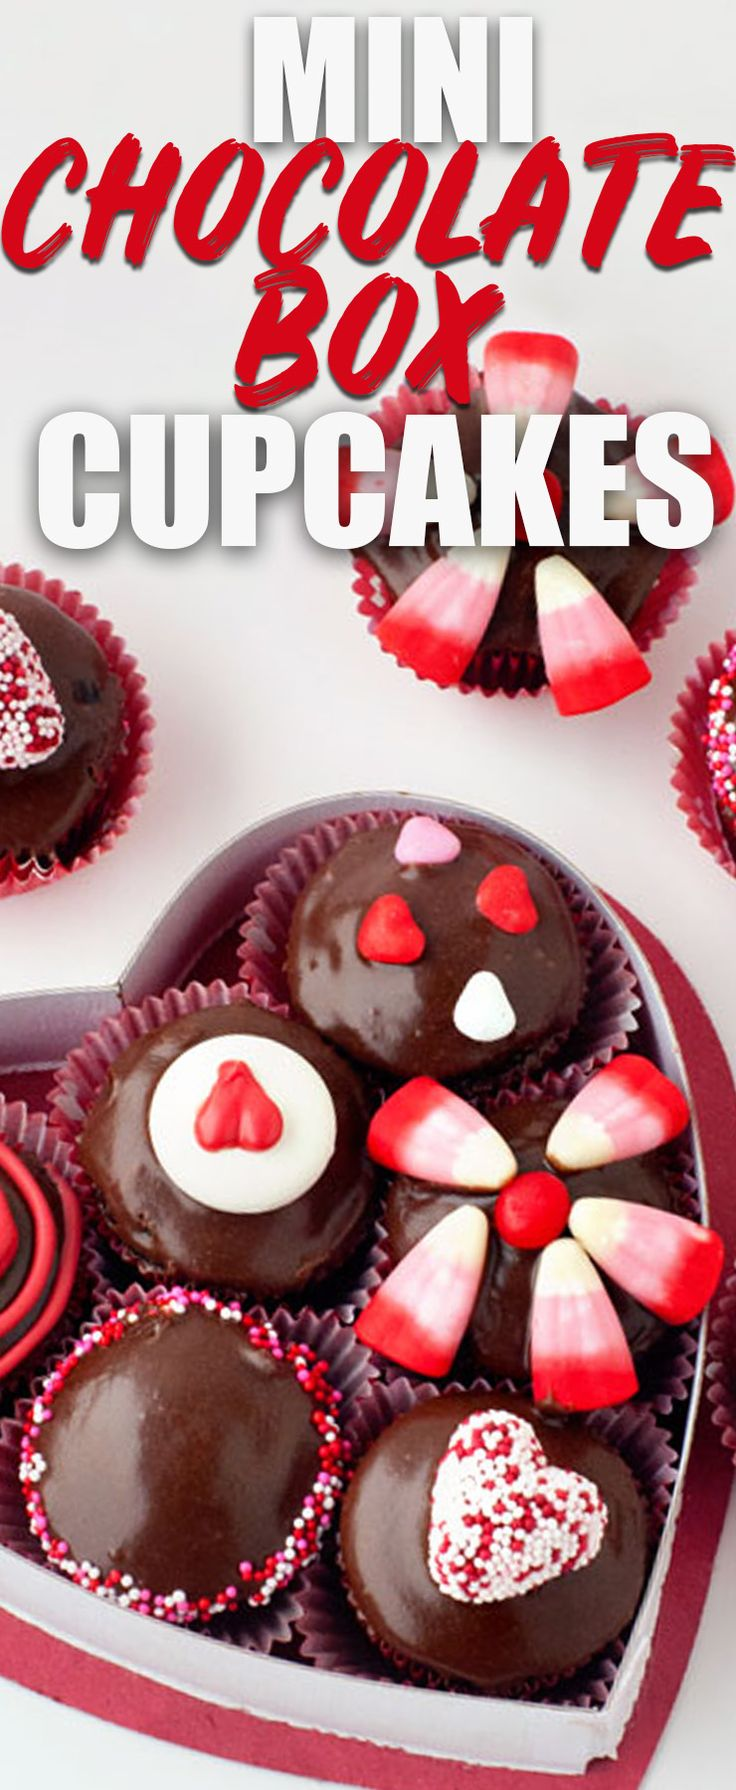 These Mini Chocolate Box Cupcakes are the cutest Valentine's Day dessert you can make! Use cake mix and some creative ideas to turn these into a cute heart box that looks like a box of chocolates! via @heatherlikesfood